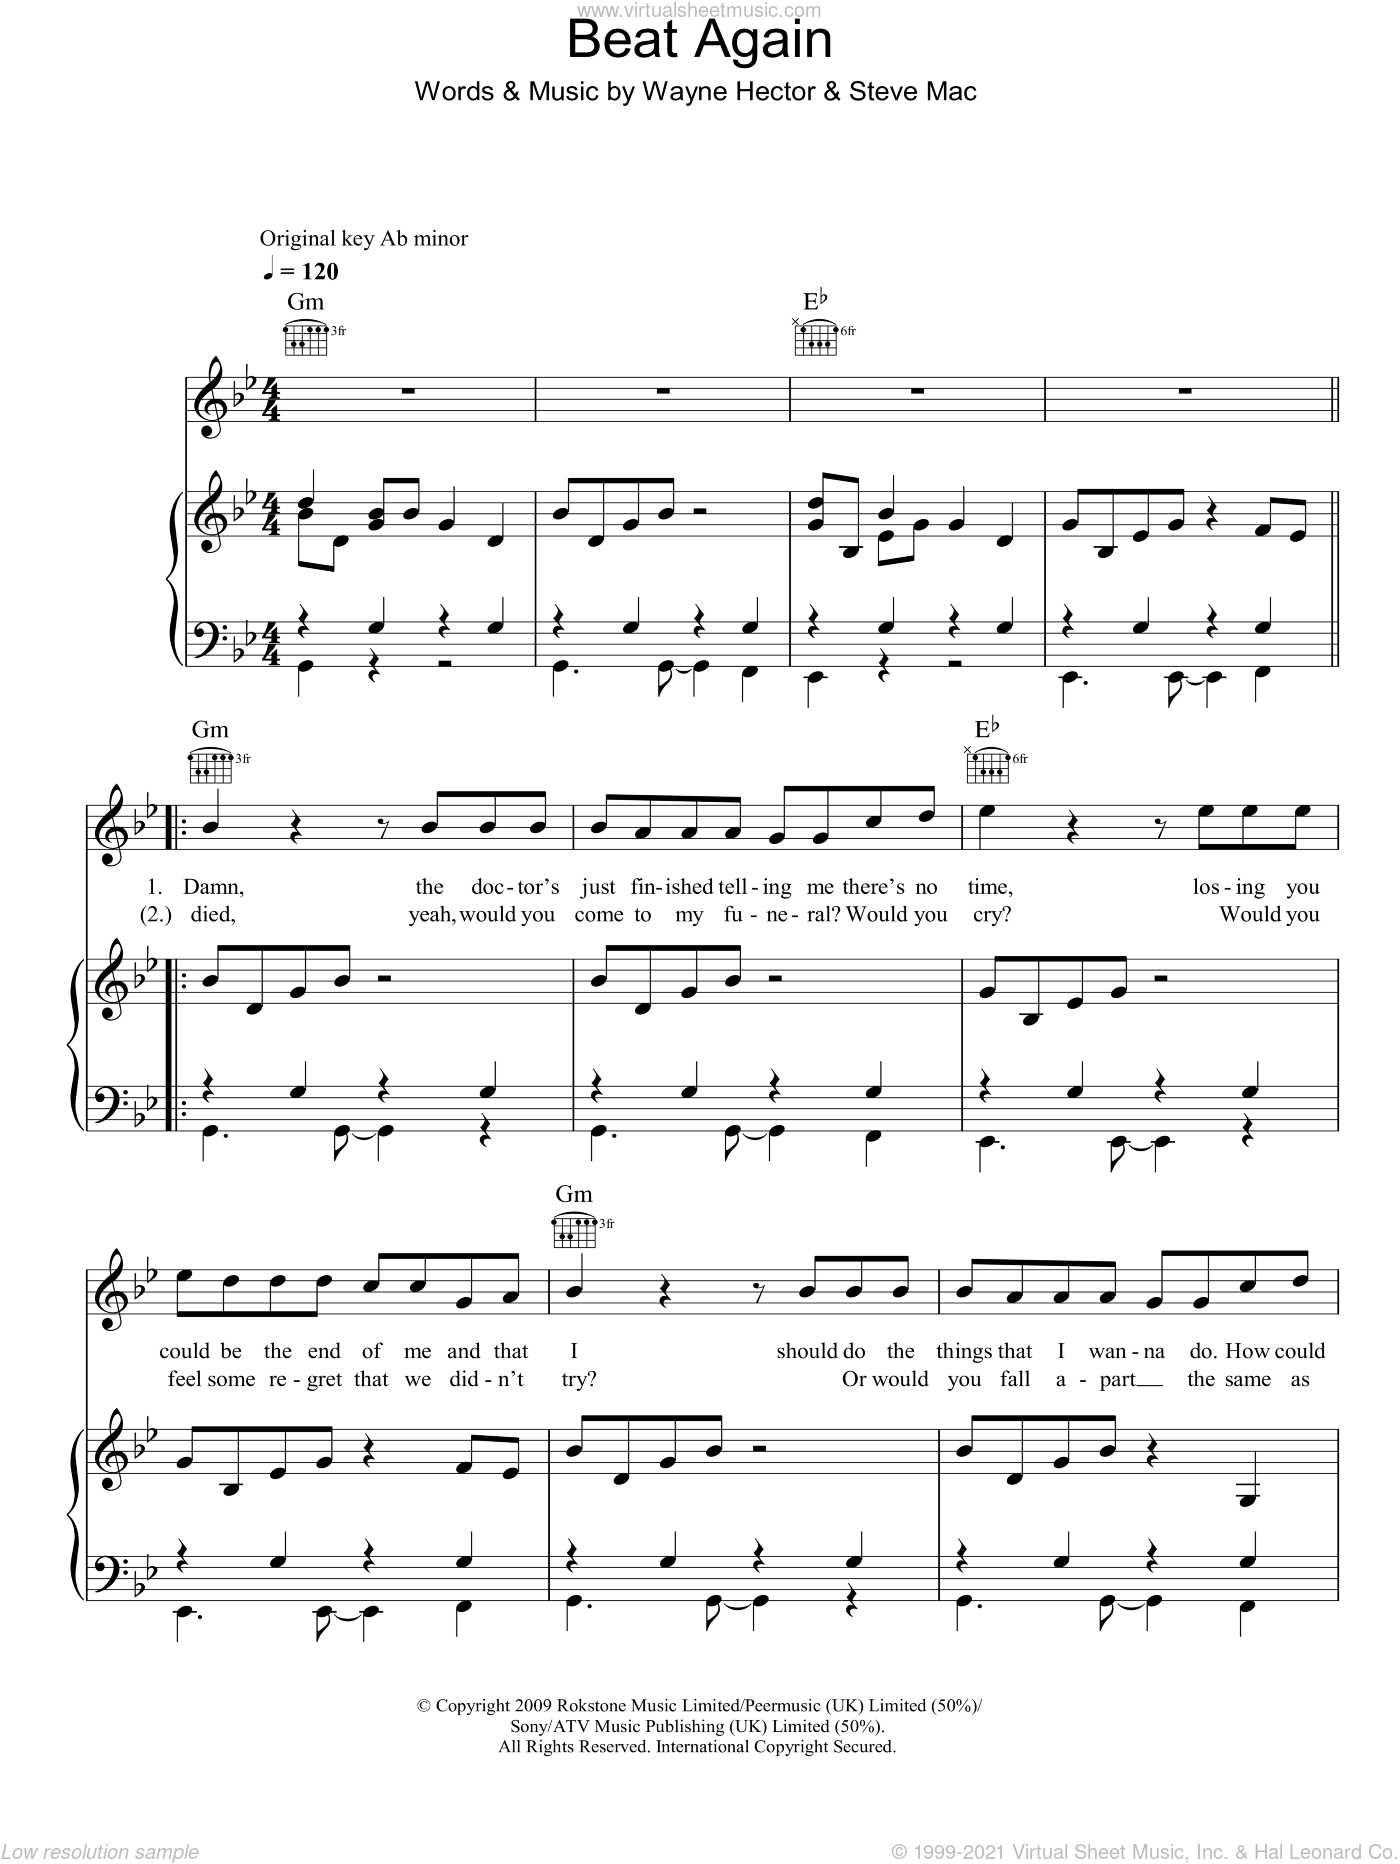 Beat Again sheet music for voice, piano or guitar by JLS, Steve Mac and Wayne Hector, intermediate skill level